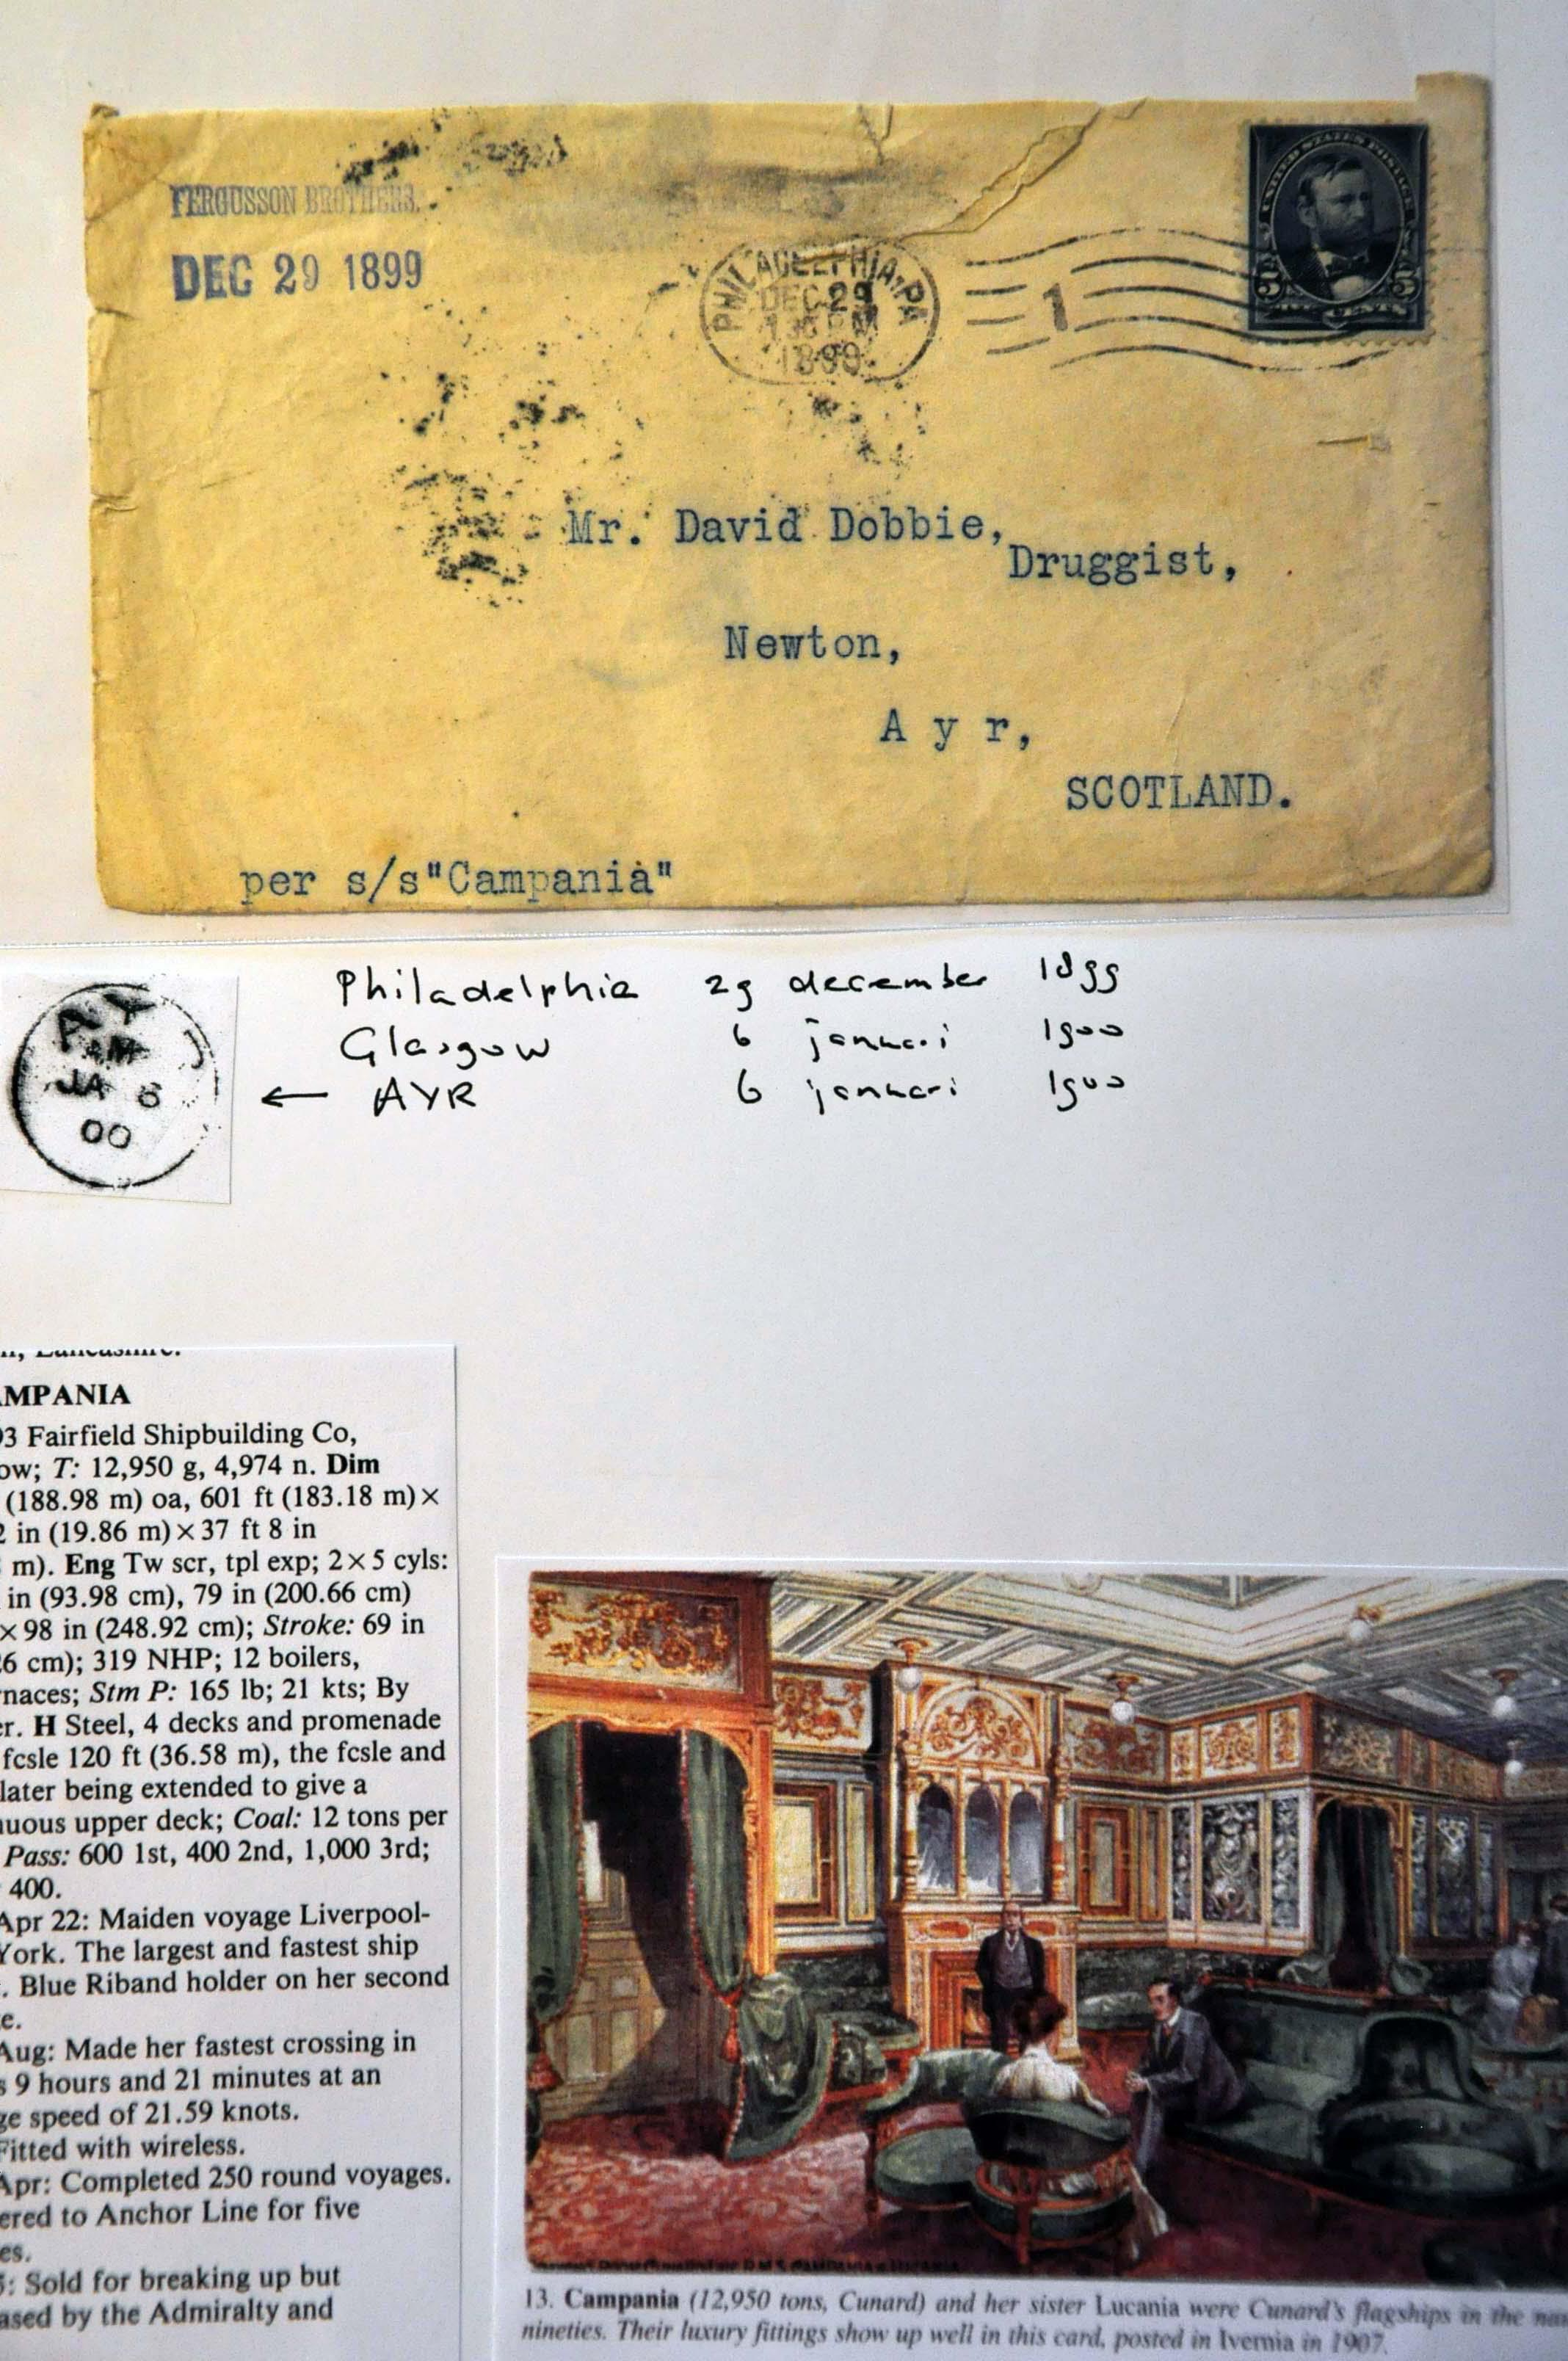 Lot 1011 - Outside Europa usa -  Corinphila Veilingen Auction 244 -Netherlands and former colonies, WW2 Postal History, Bosnia, German and British colonies, Egypt. - Day 1